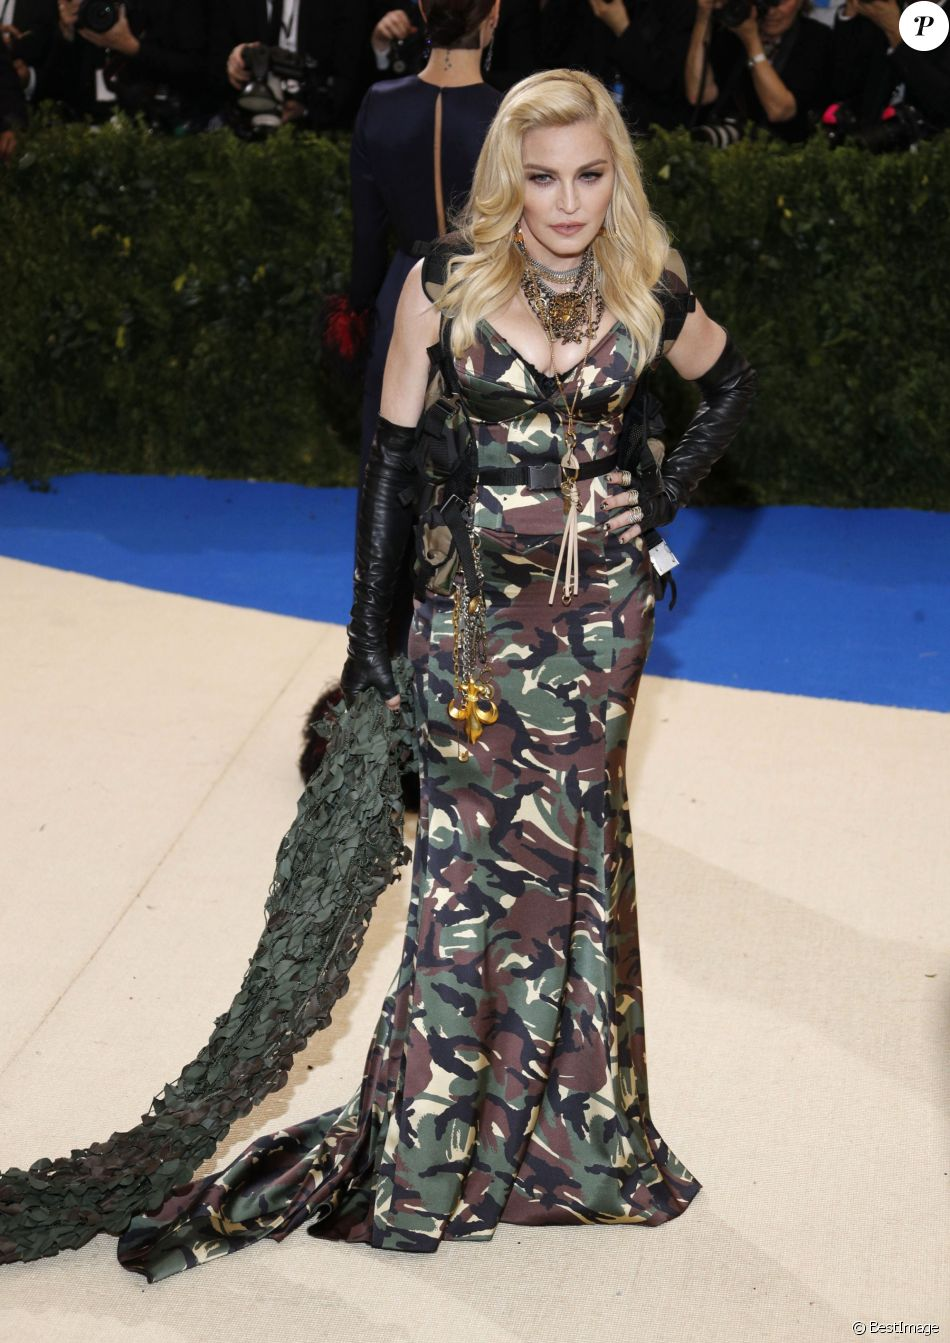 "Madonna (un grillz dentaire fait de diamants) au MET 2017 Costume Institute Gala sur le thème de ""Rei Kawakubo/Comme des Garçons: Art Of The In-Between"" à New York le 1er mai 2017."